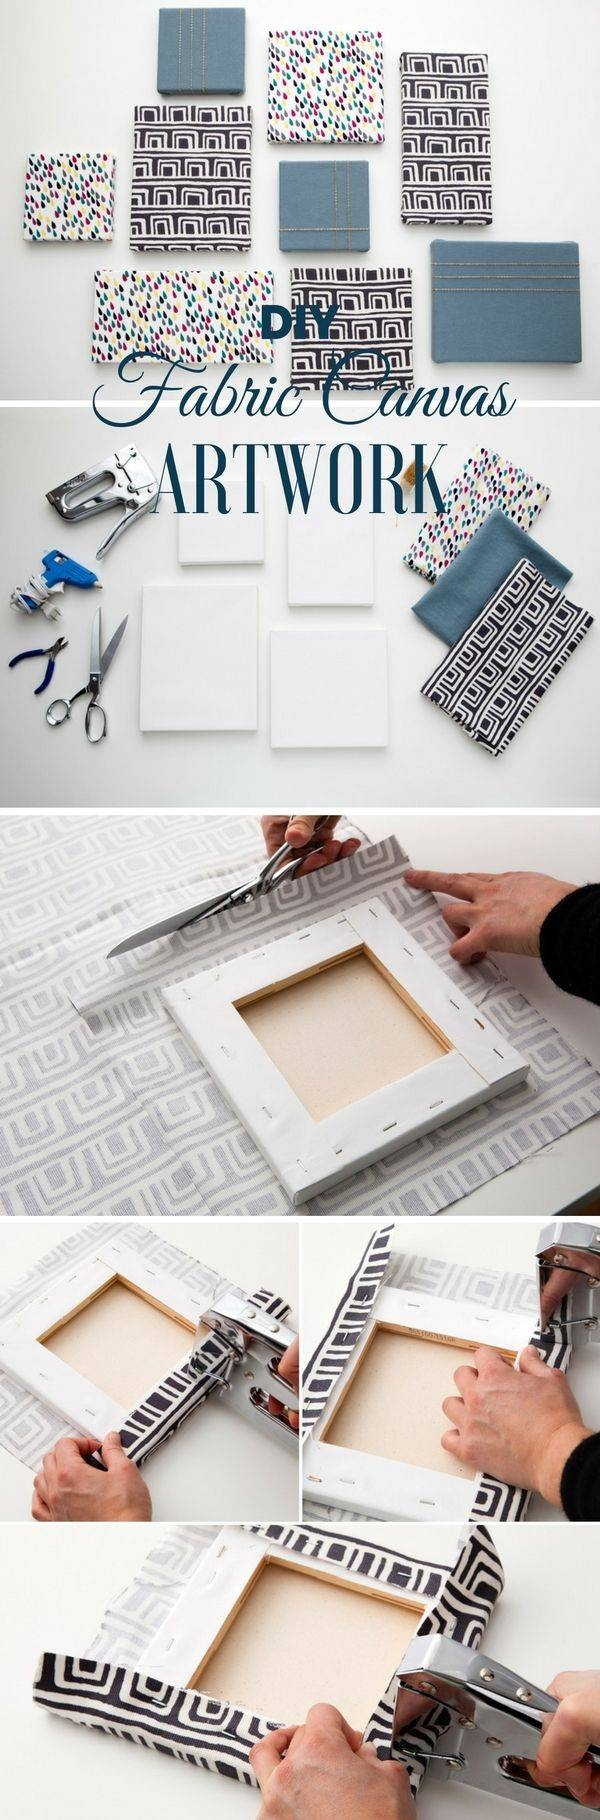 Best 25+ Diy Wall Art Ideas On Pinterest | Hexagon Wall Shelf, Diy In Current Pinterest Diy Wall Art (View 18 of 25)